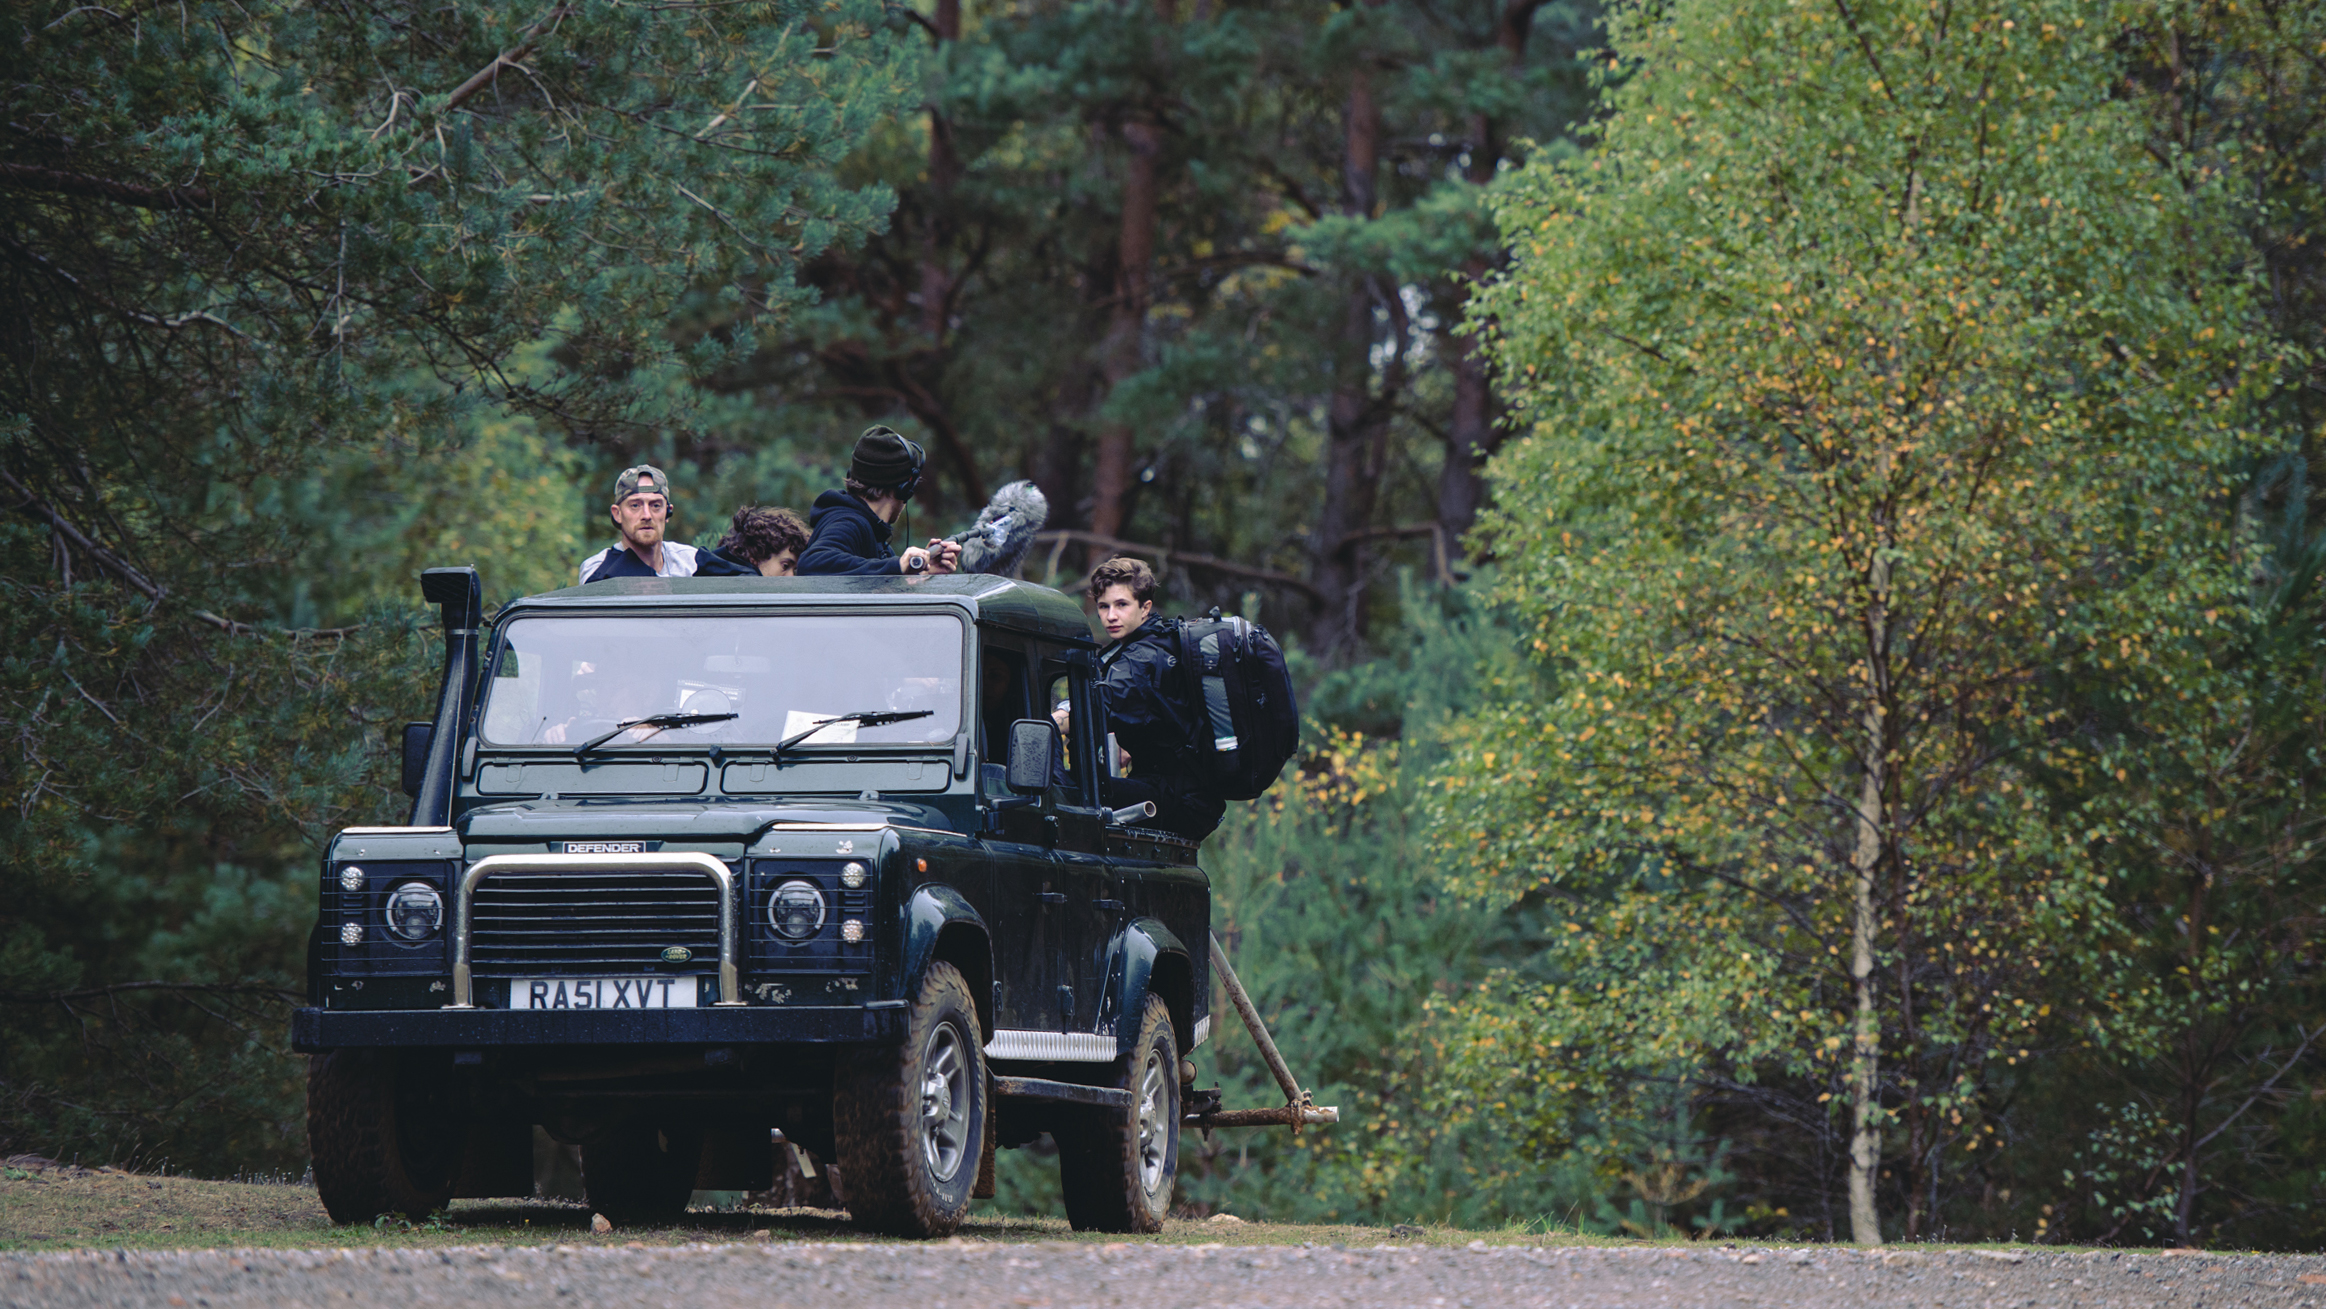 A jeep driving through a wooded area with a film crew sitting on the back